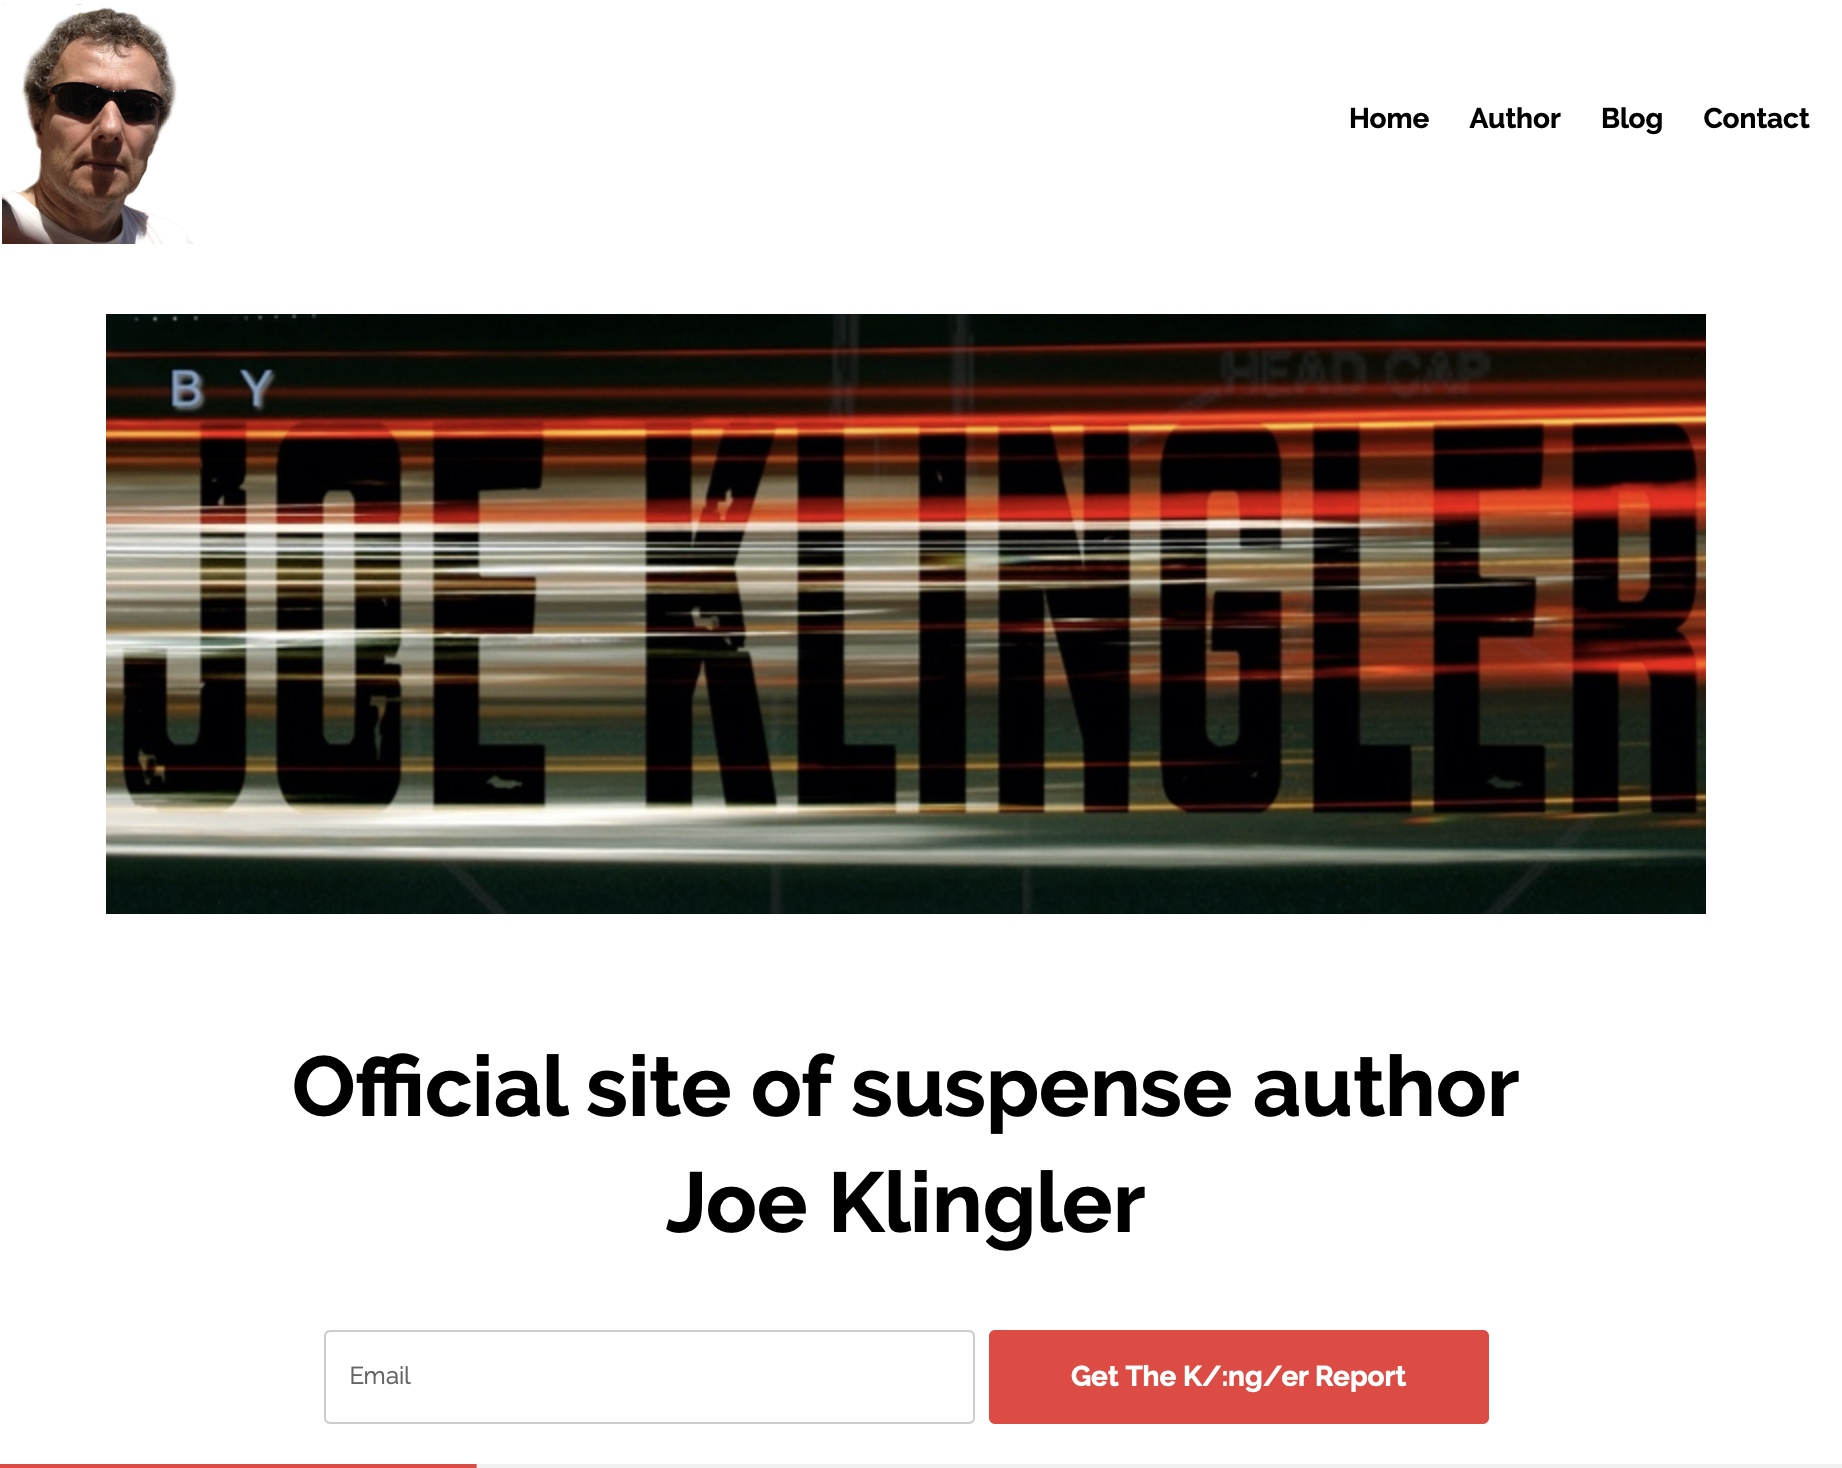 Welcome to the new website of suspense writer Joe Klingler